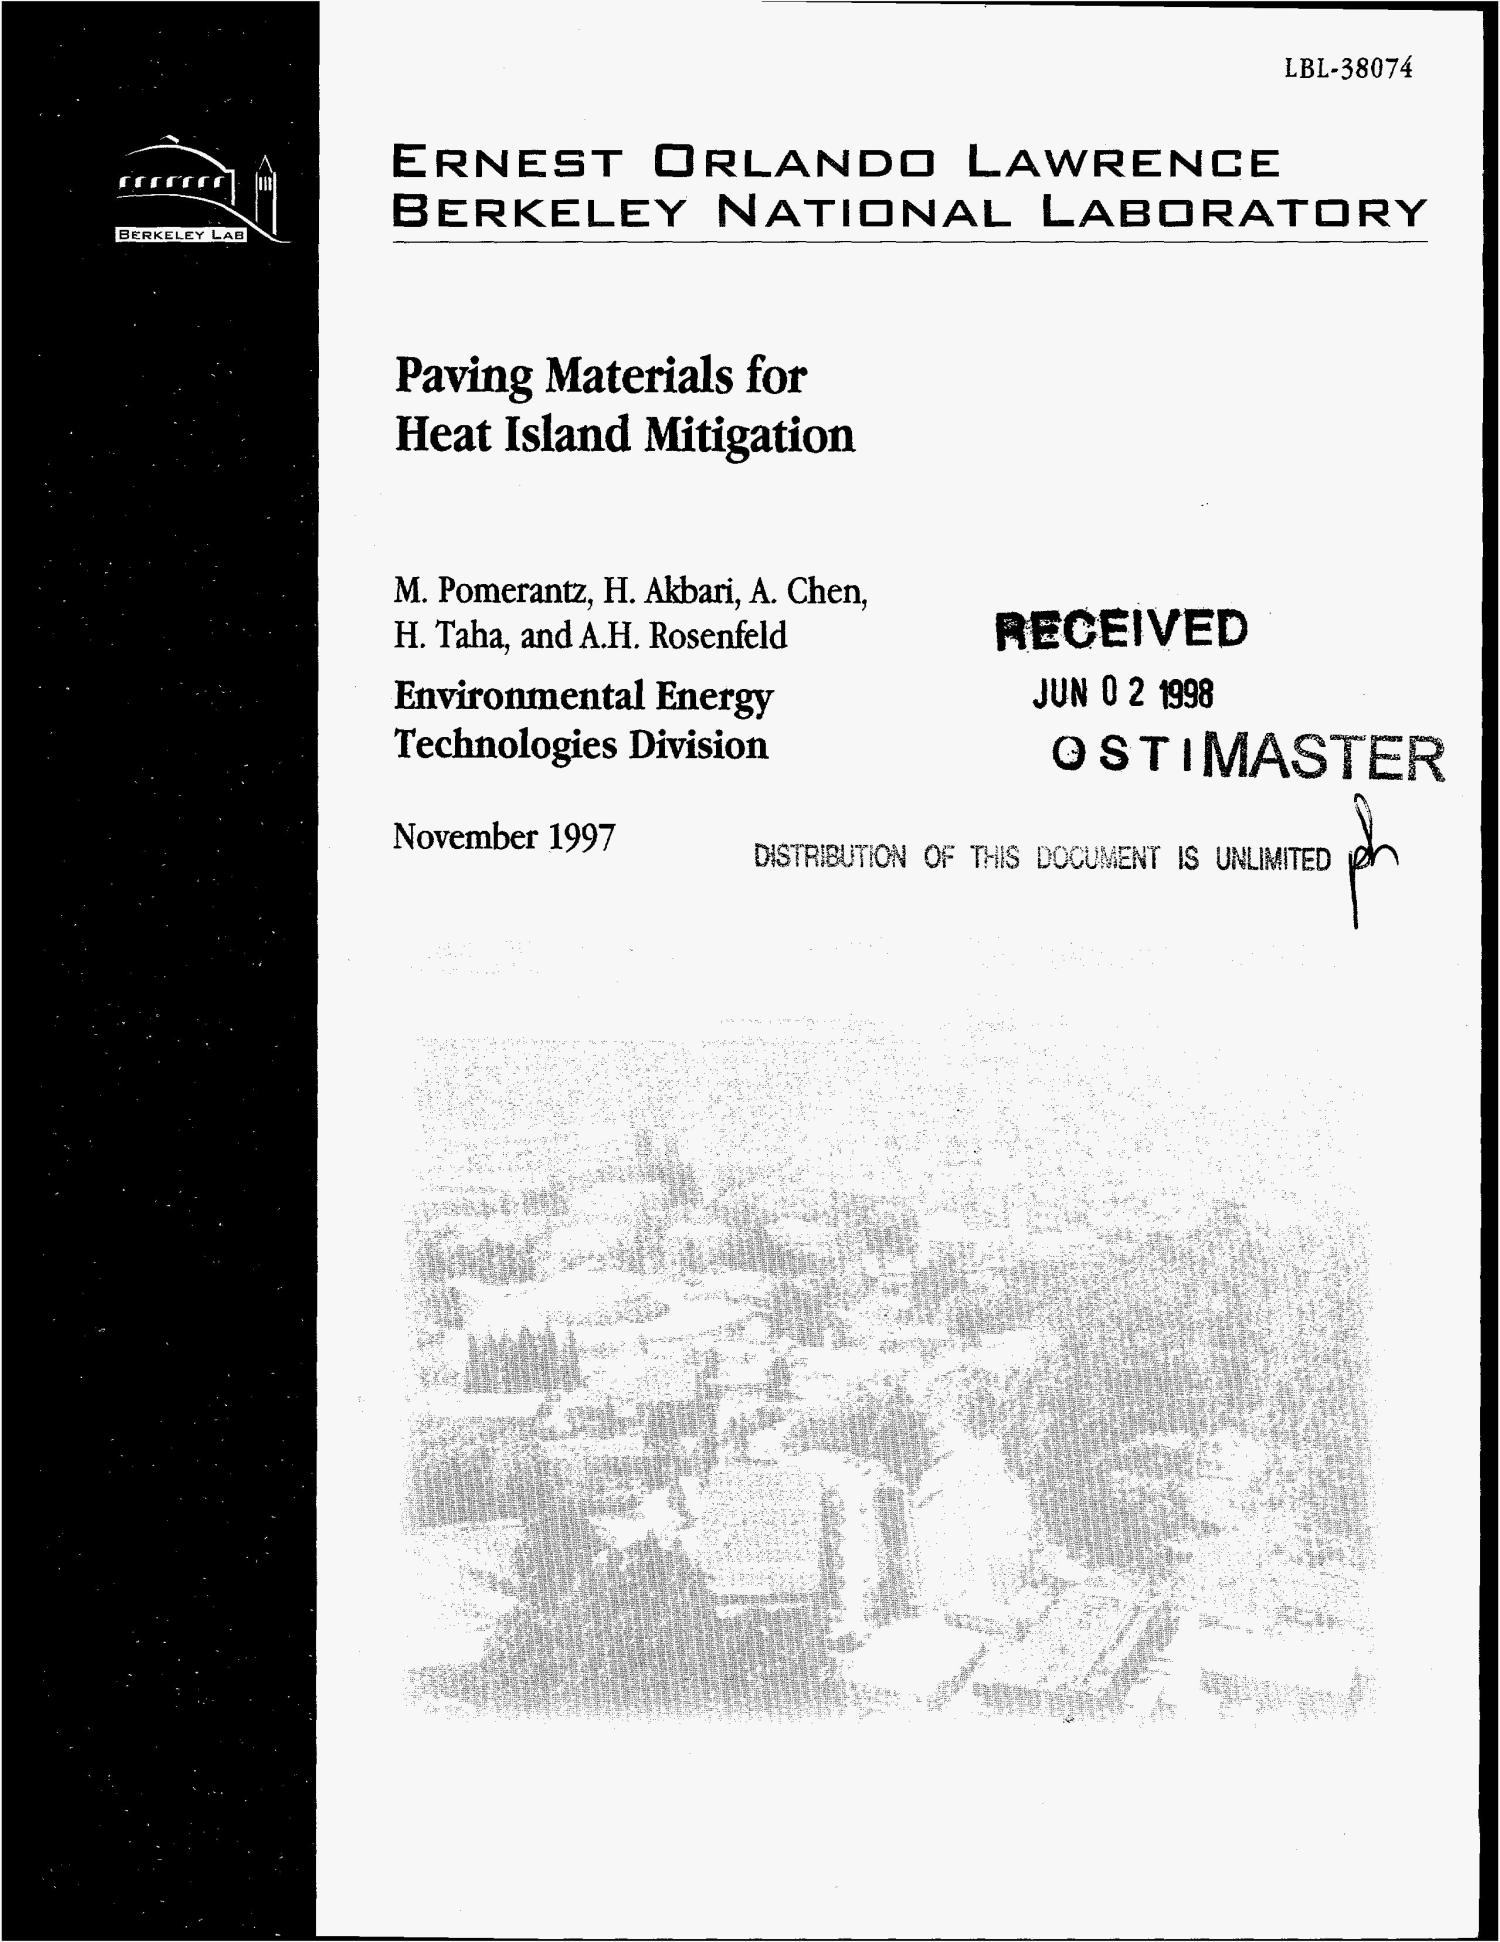 Paving materials for heat island mitigation                                                                                                      [Sequence #]: 1 of 29